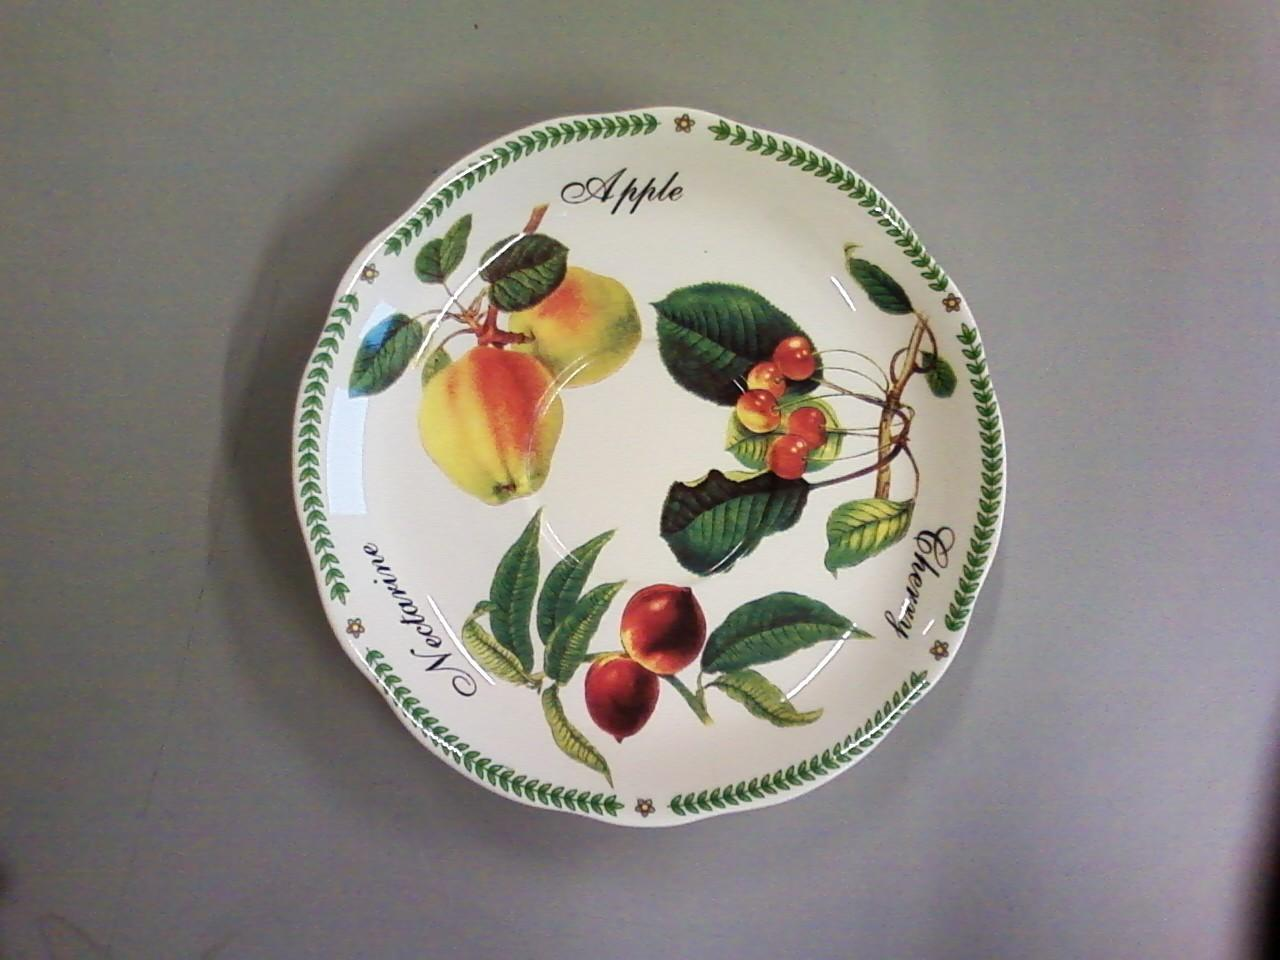 Painted bowl restored after sustaining fire damage - After Photo